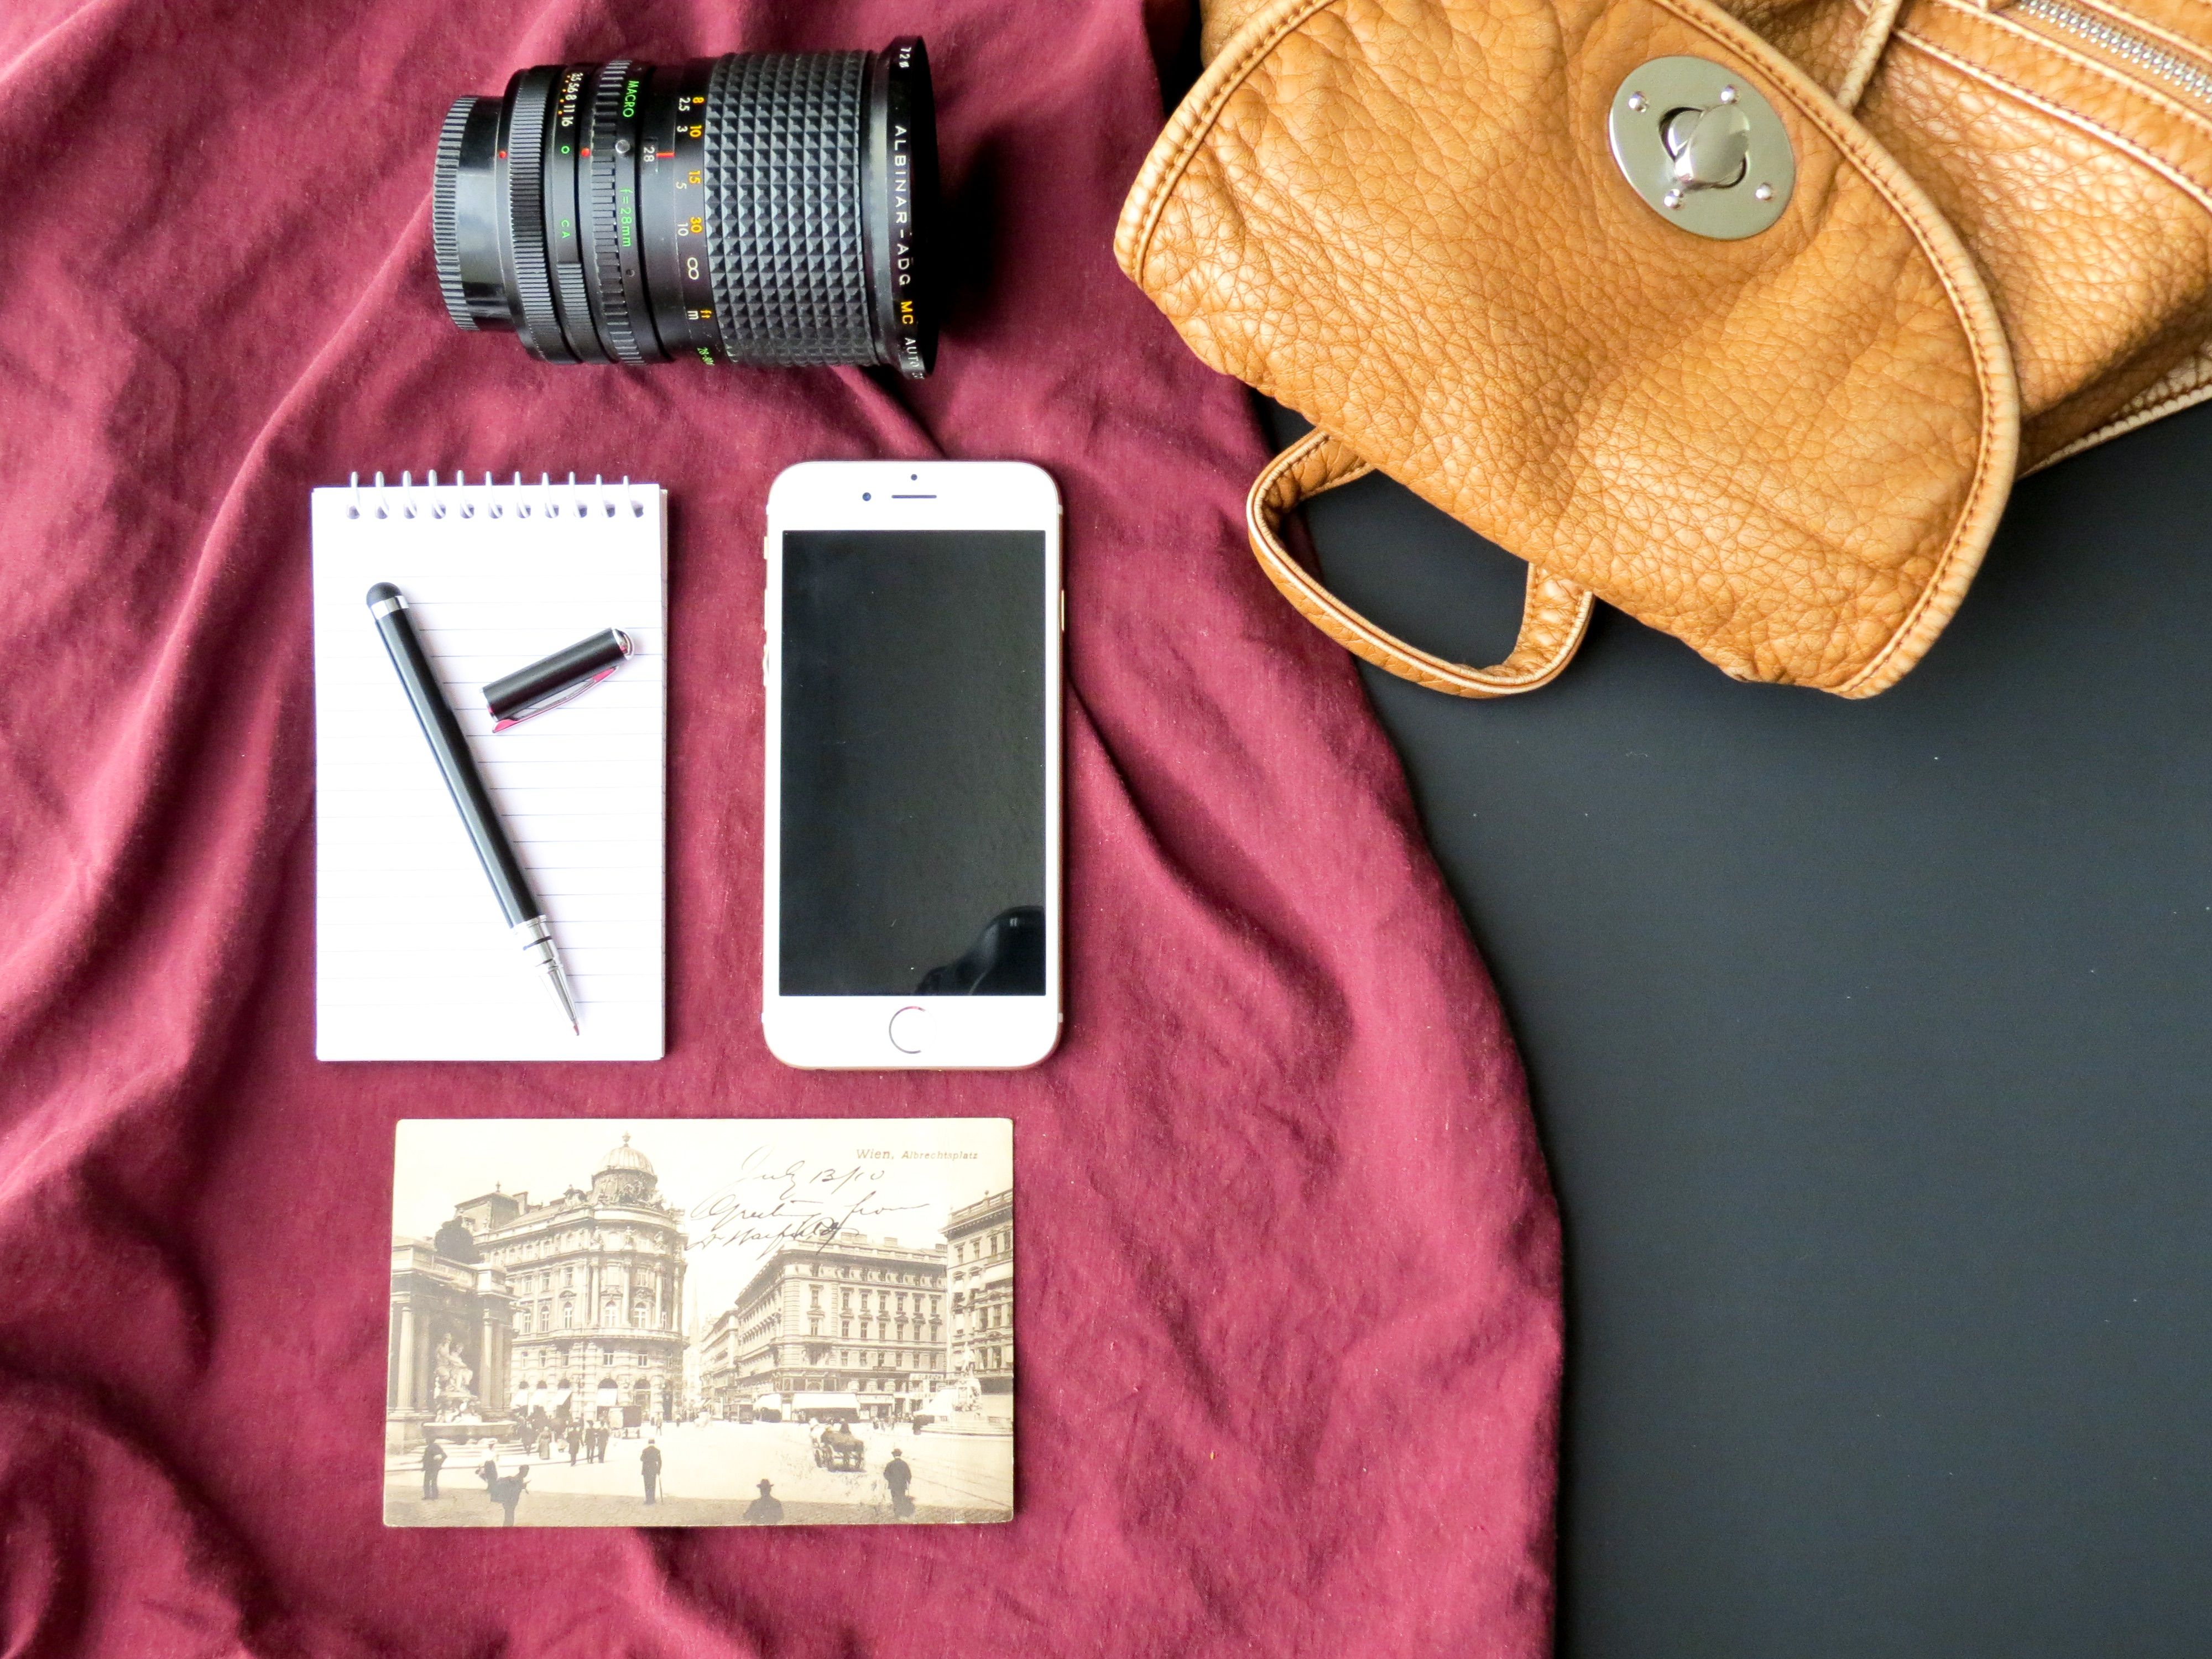 Flat Lay Photography of Iphone, Notebook, and Dslr Lens